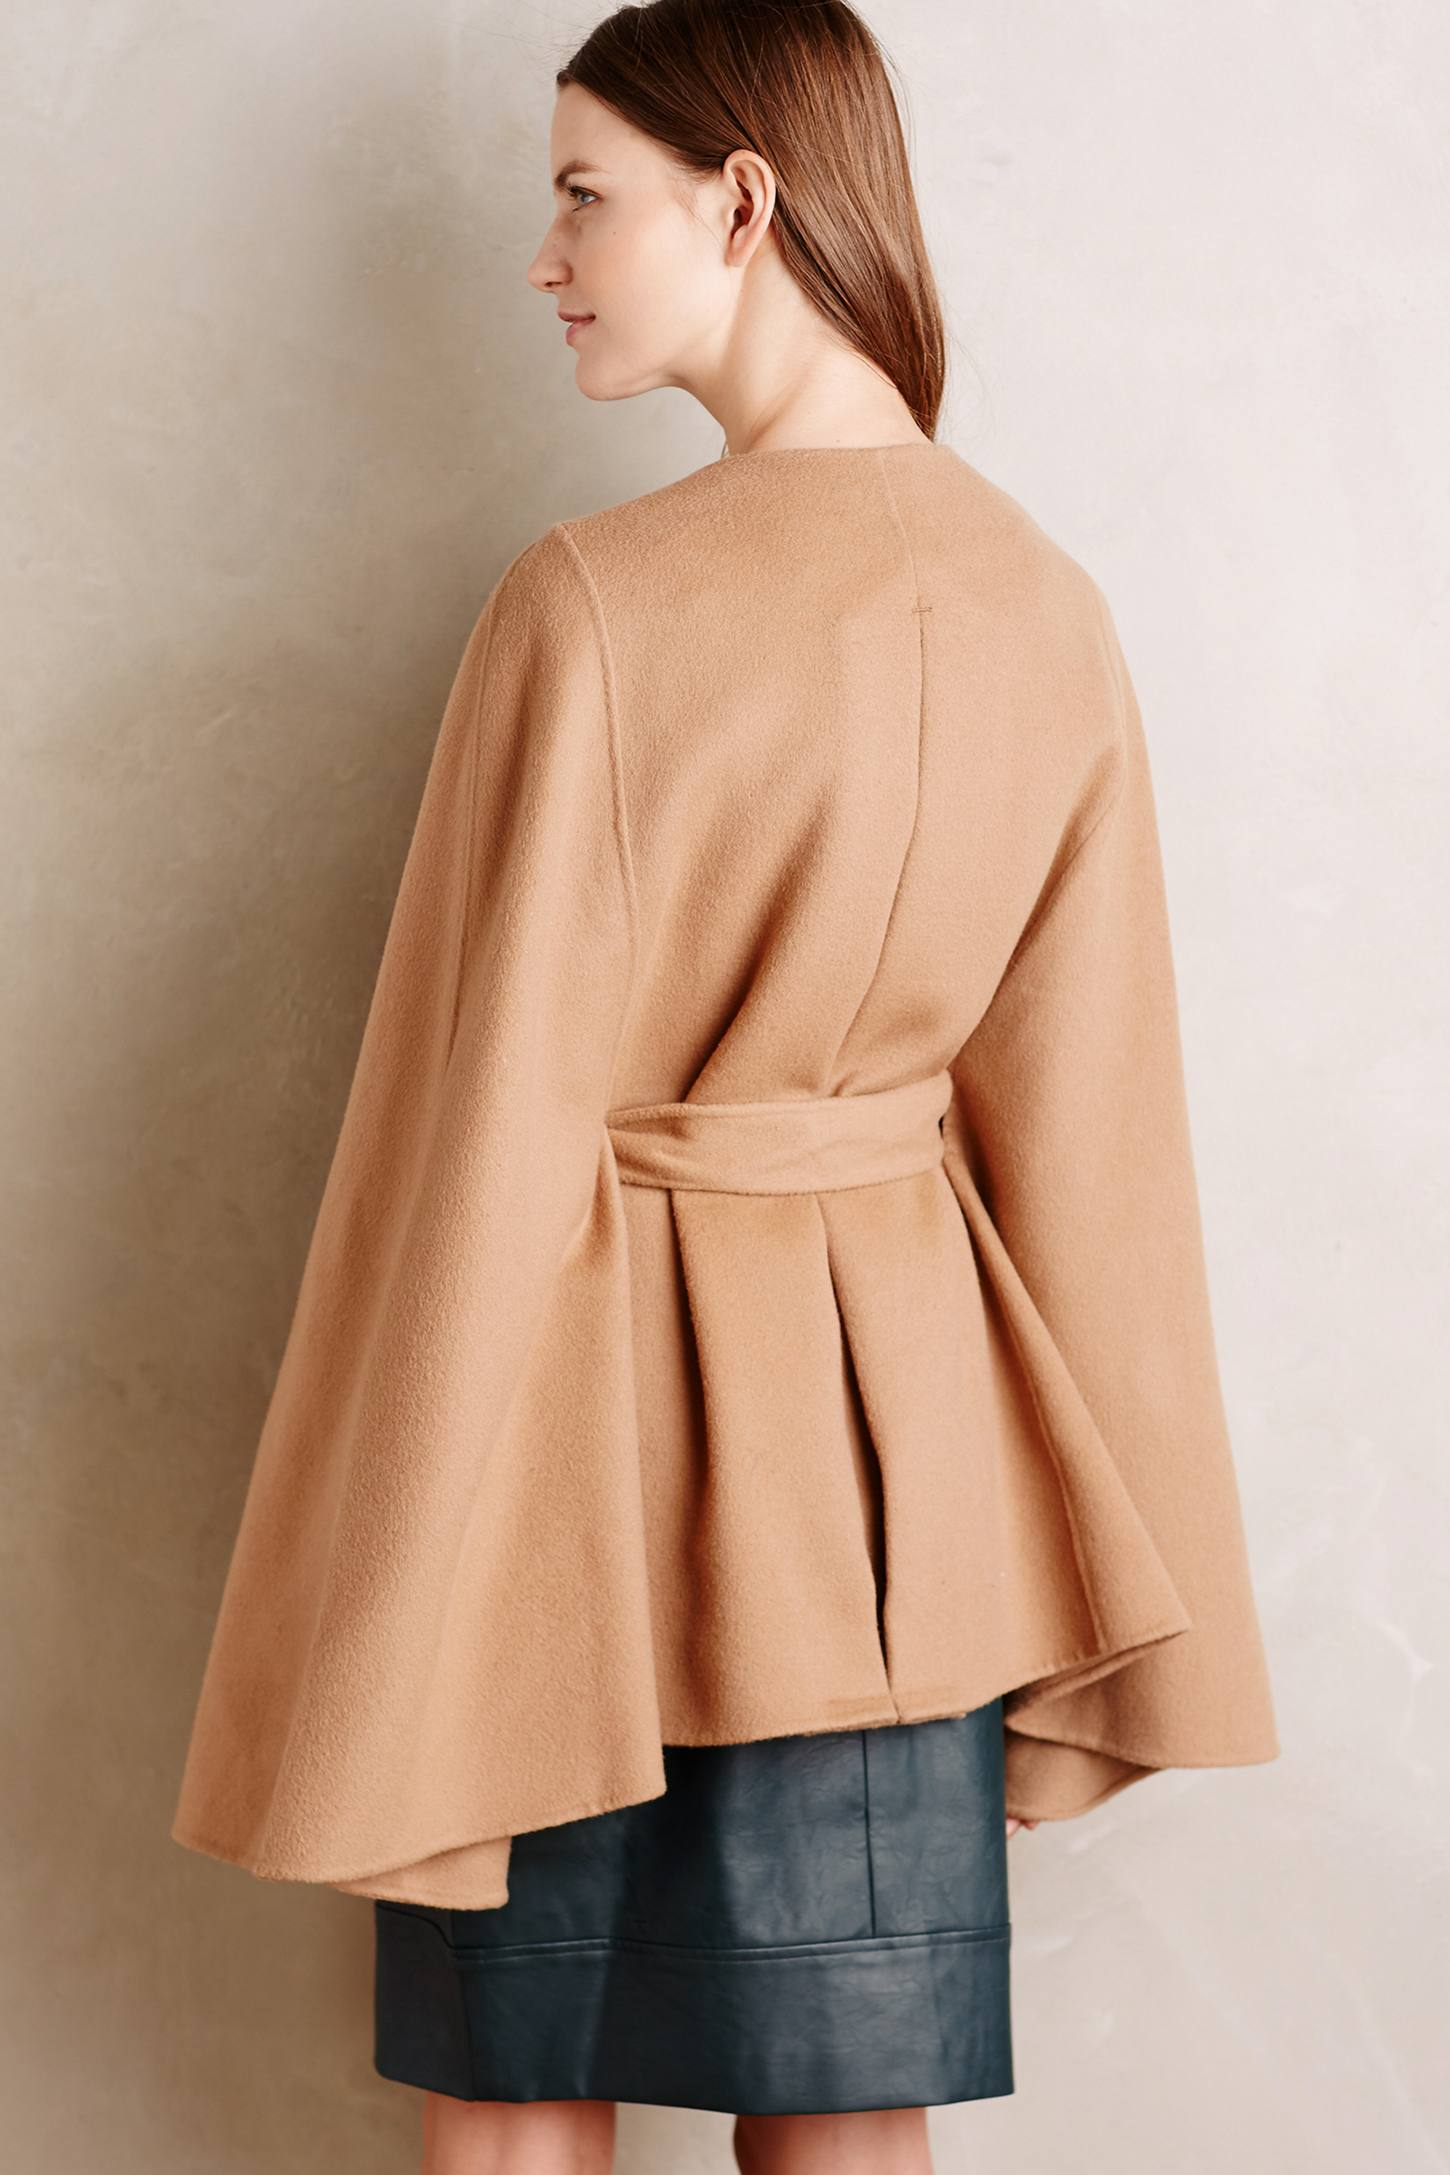 Geneve Wool Capelet